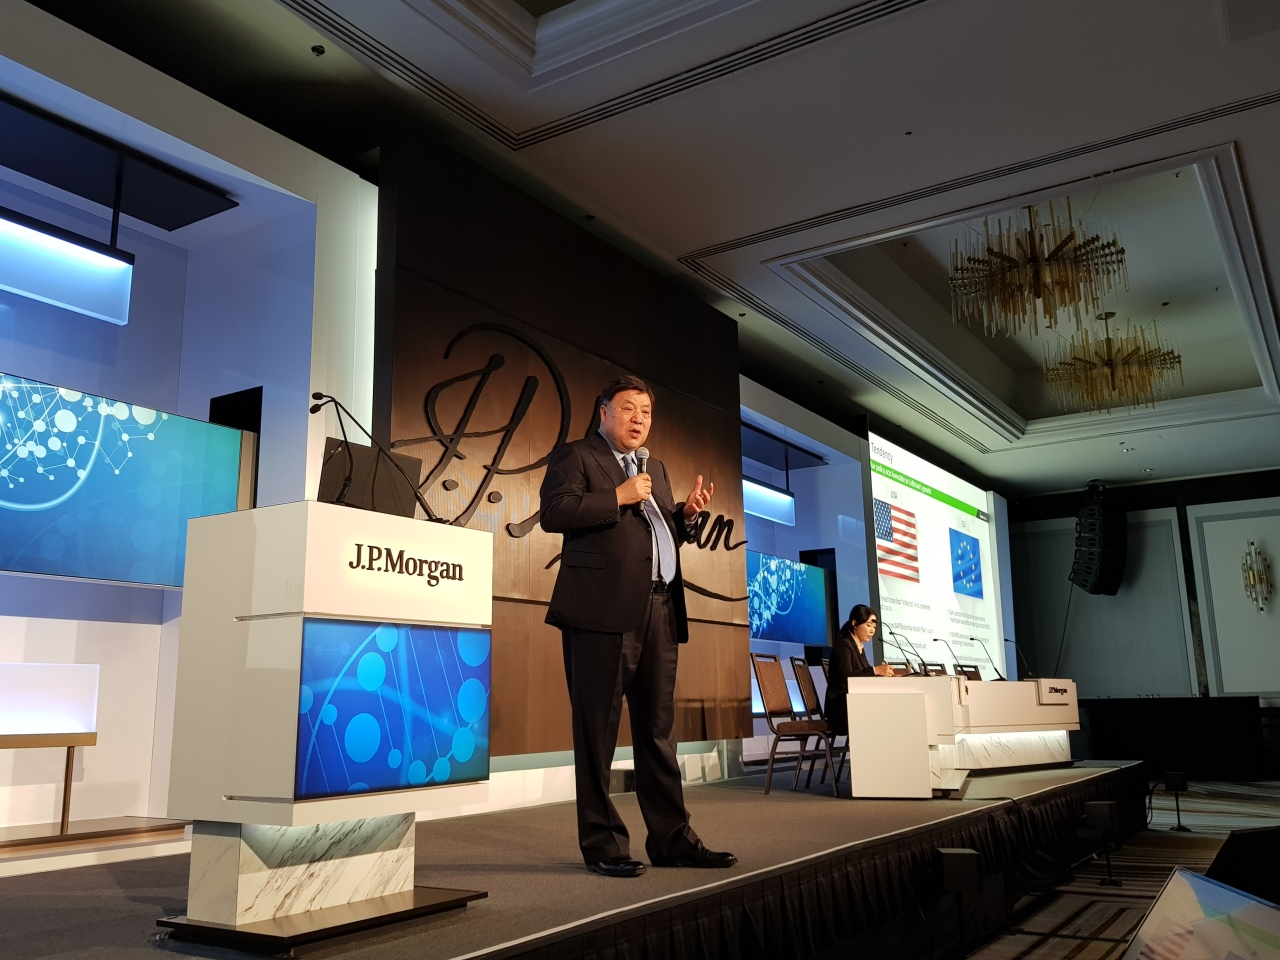 Celltrion Chairman Seo Jung-jin gives a presentation at the JP Morgan Healthcare Conference 2020 in San Francisco. (Joint Press Corps.)